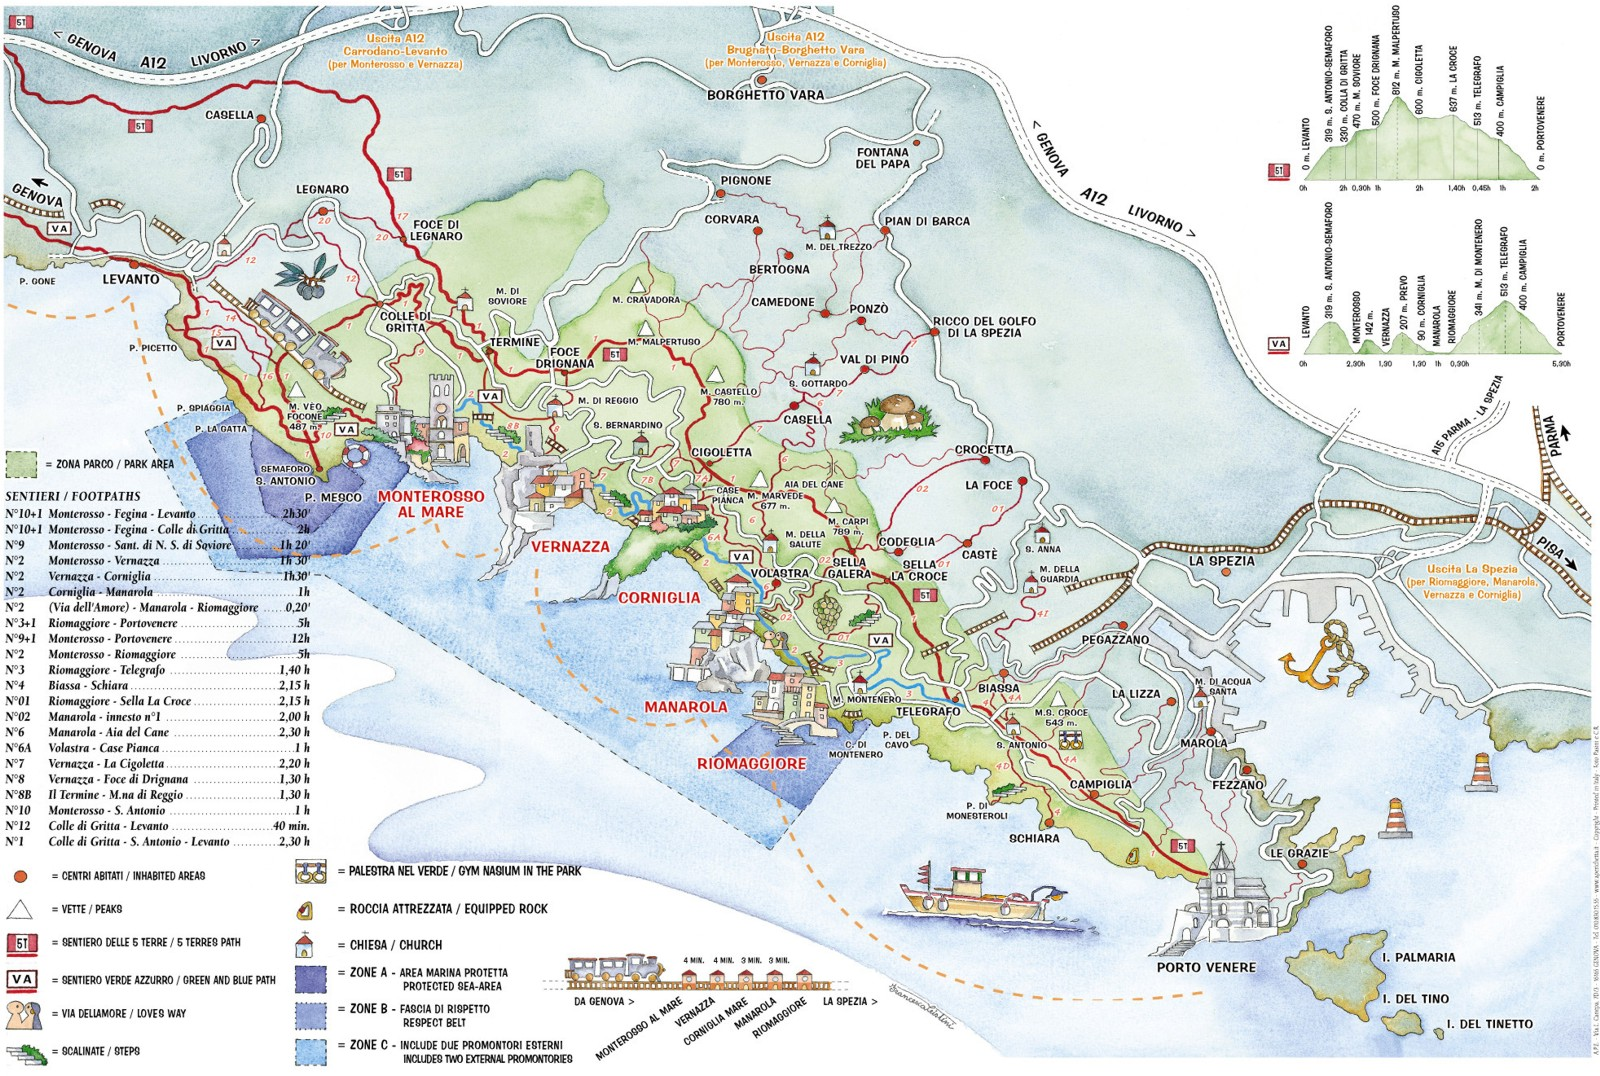 Cinque Terre detailed map - harta detaliata